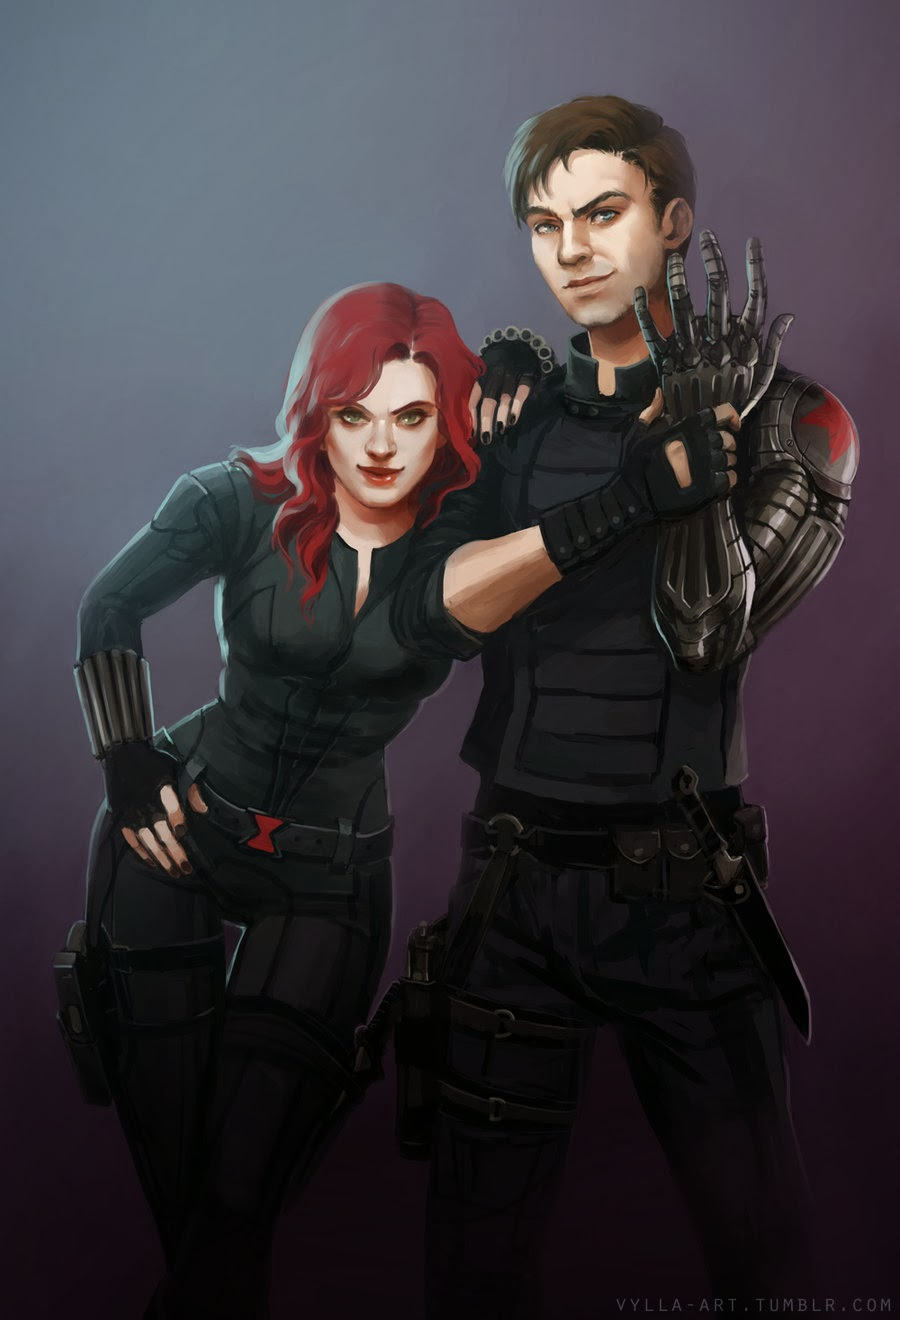 Fashion And Action Winter Soldier Character Fan Art By